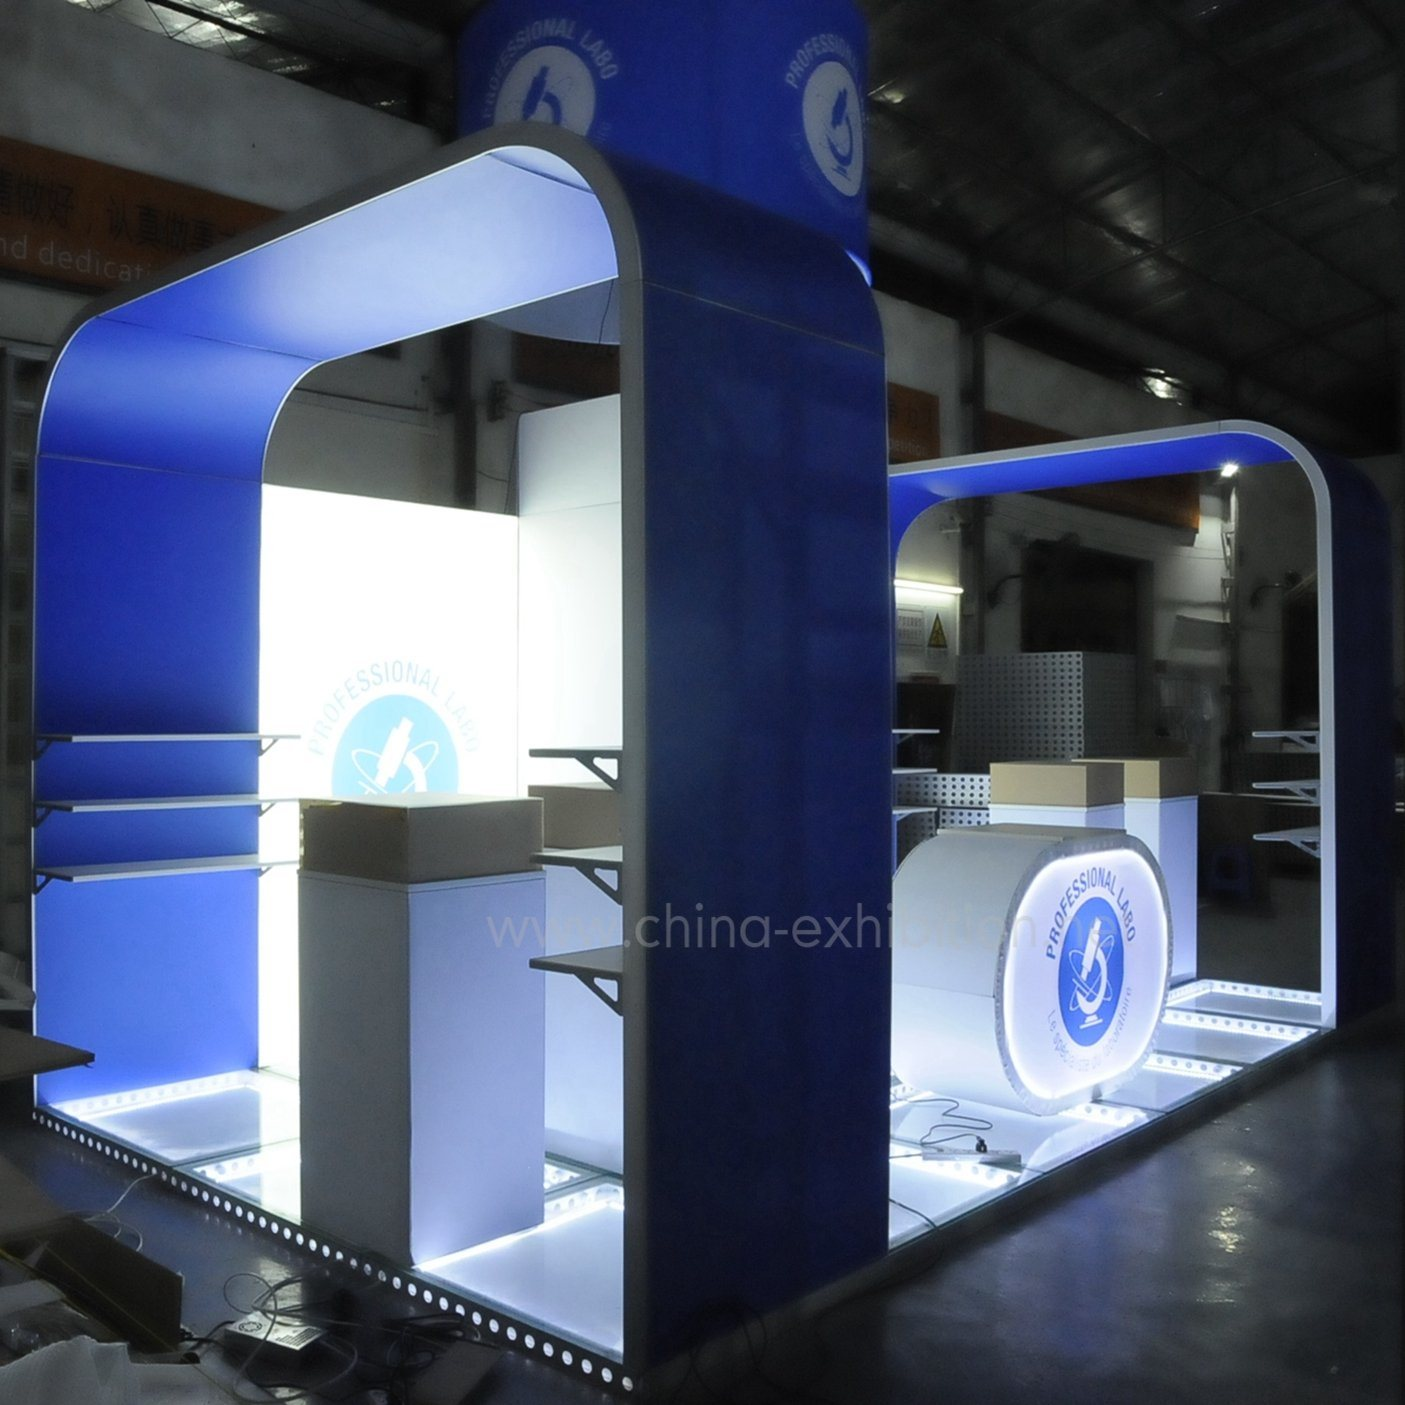 Exhibition Booth Backdrop : China booth exhibition stand backdrop tradeshow stands displays